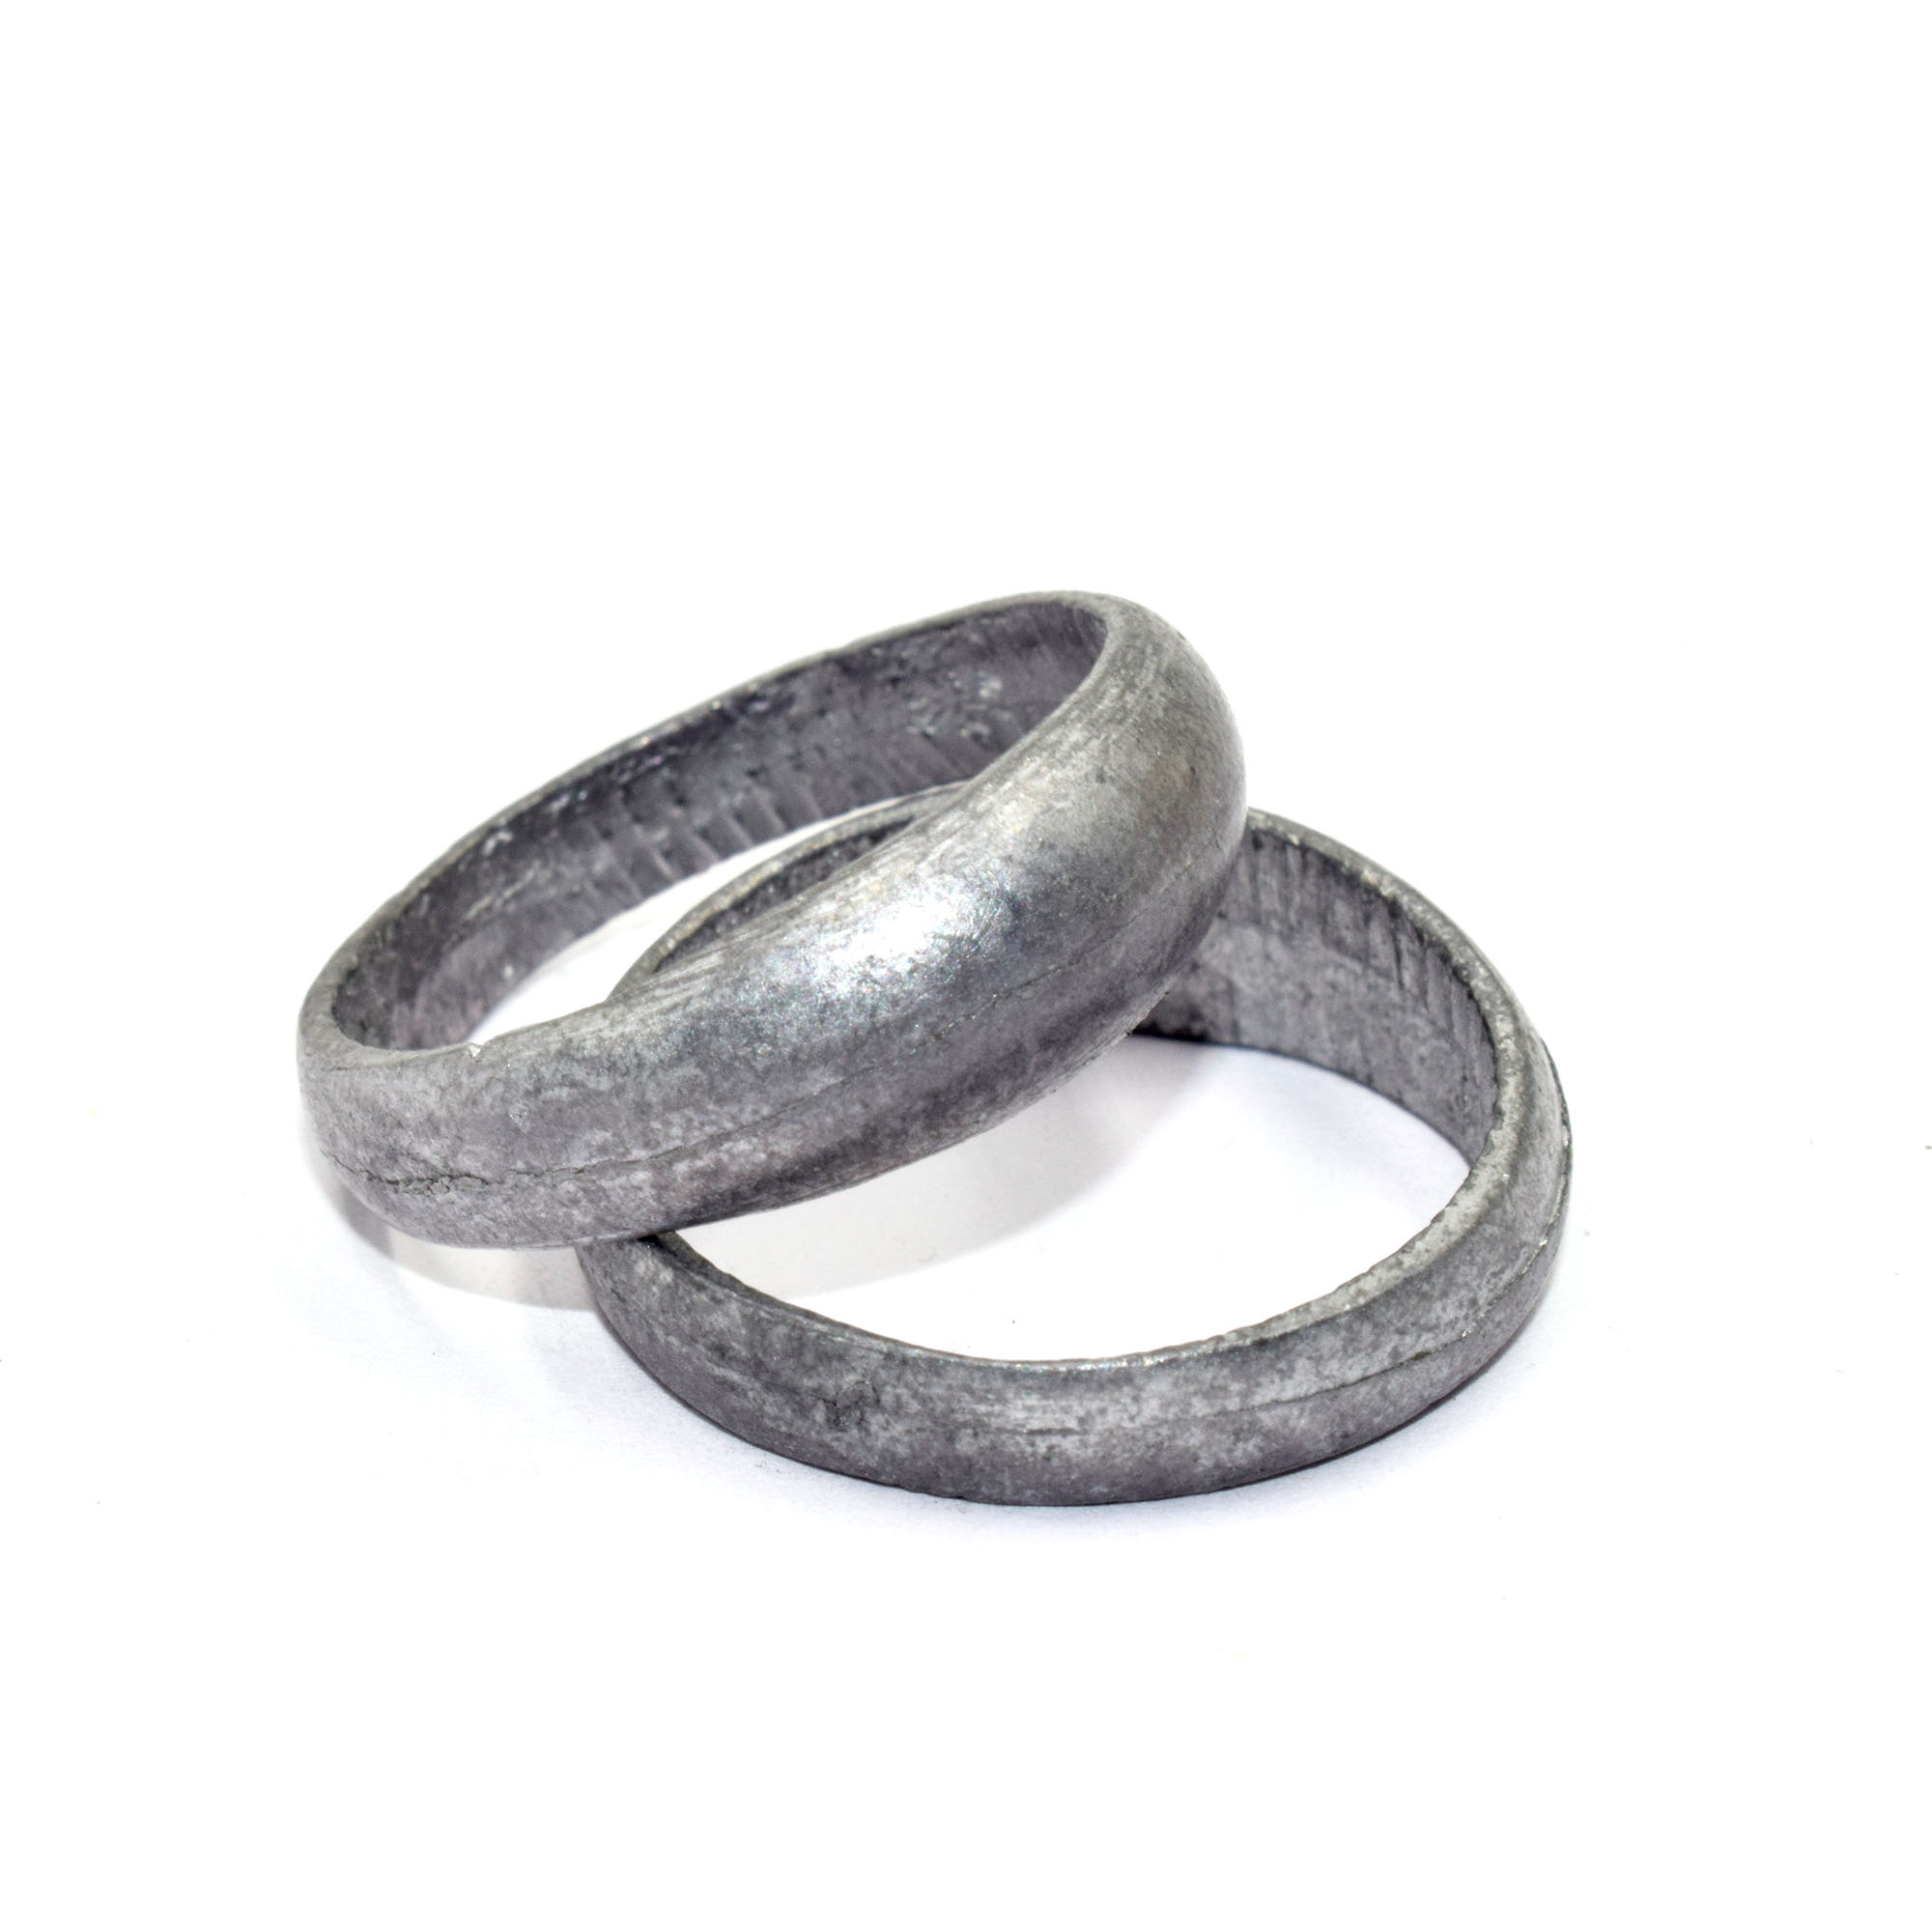 Buy Online Original Ranga Ring Combo Pack